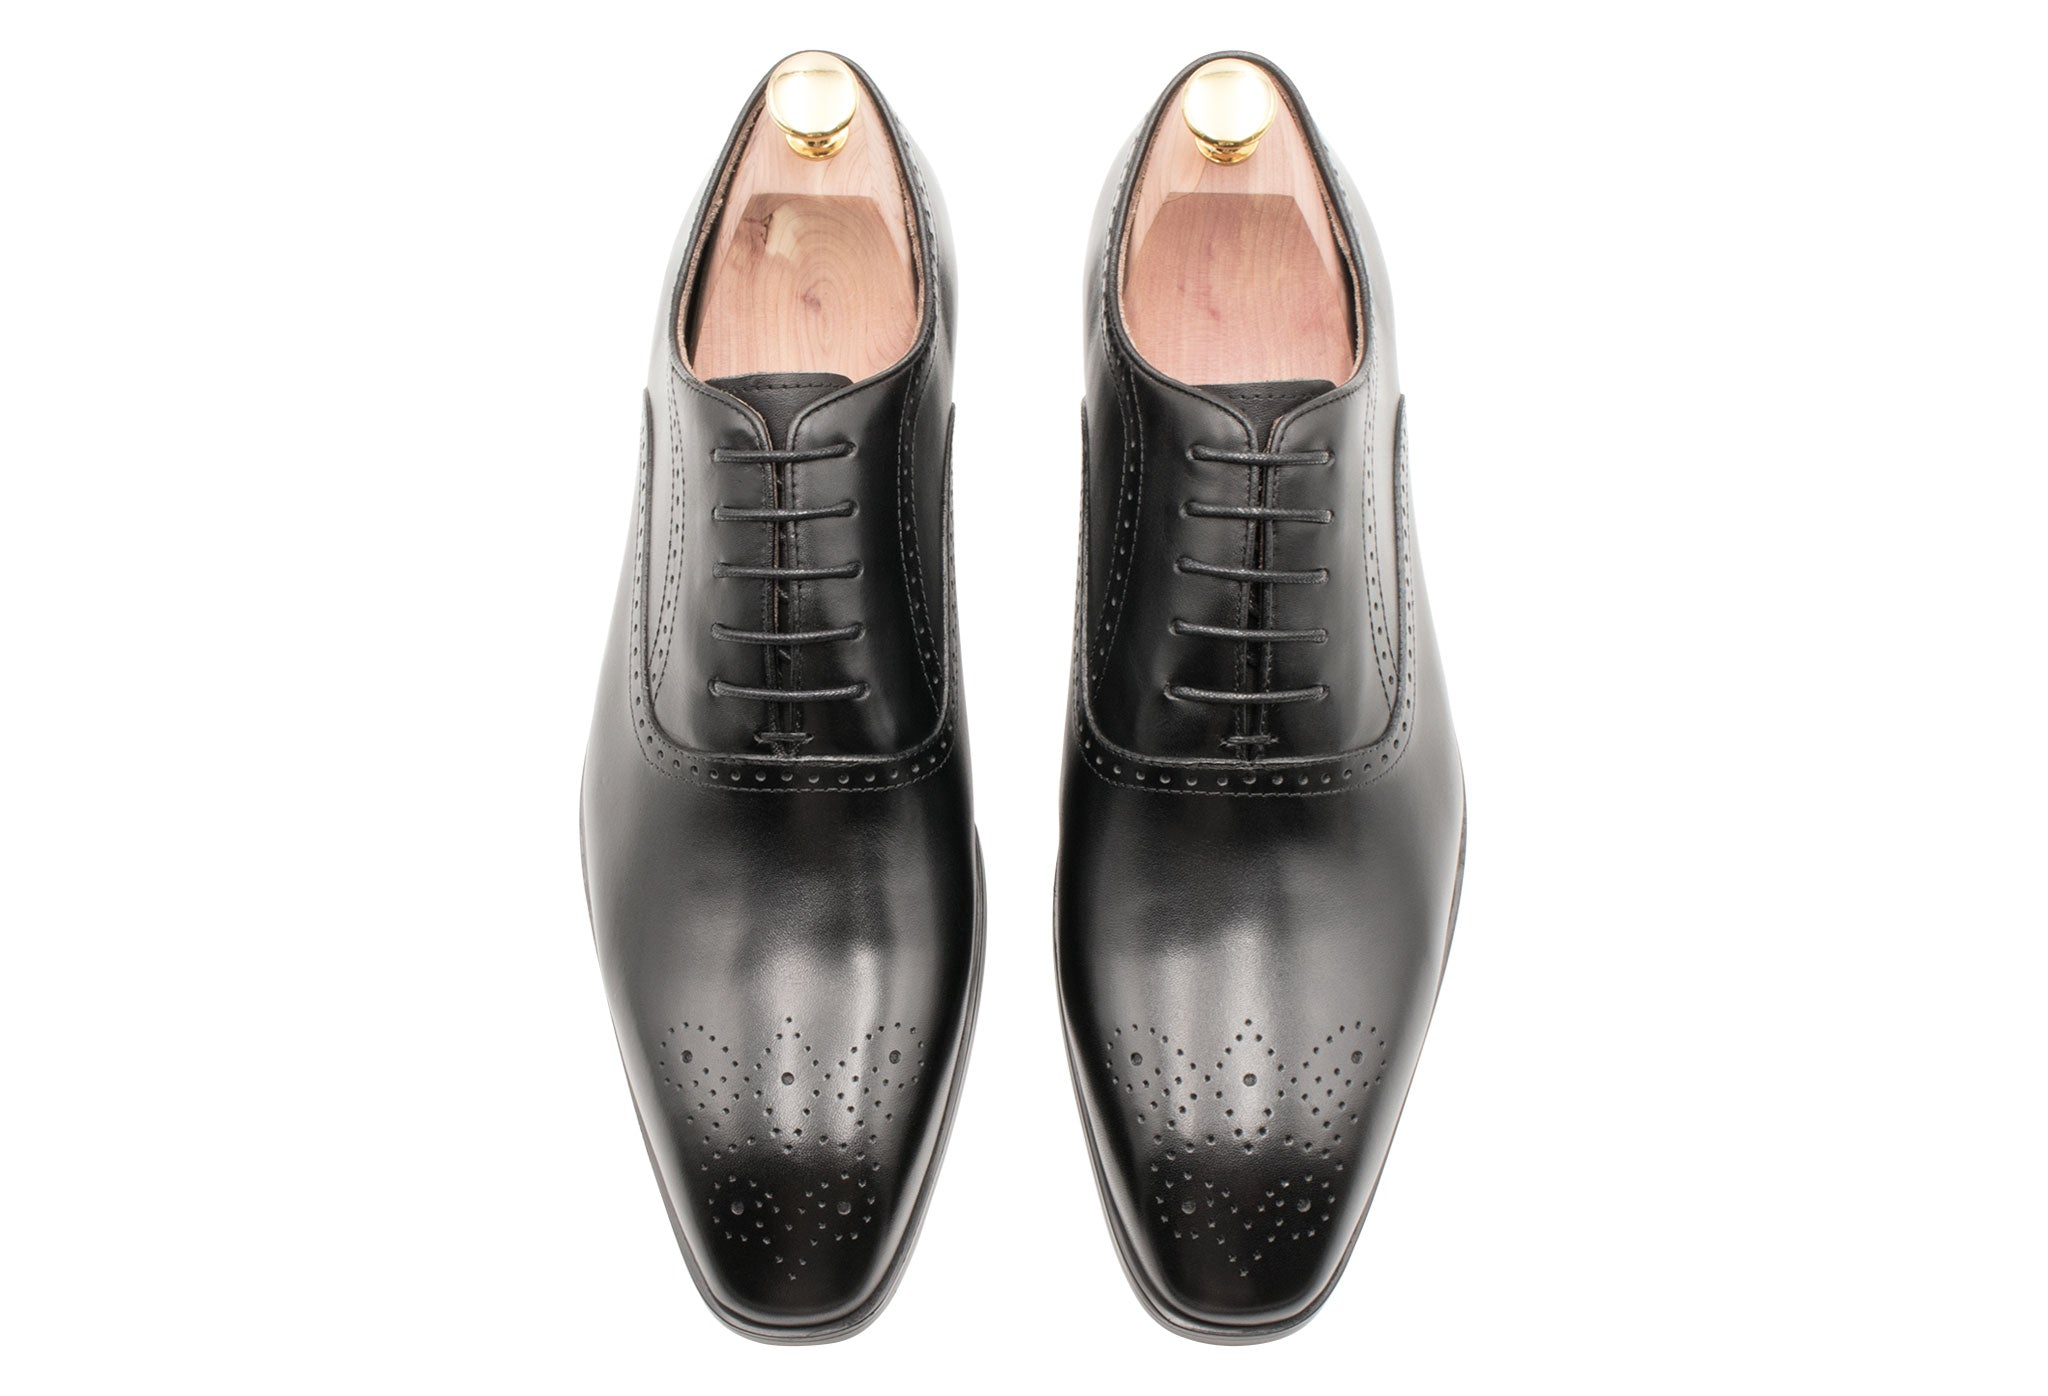 Mendoza Medallion Black Oxford Leather Shoes